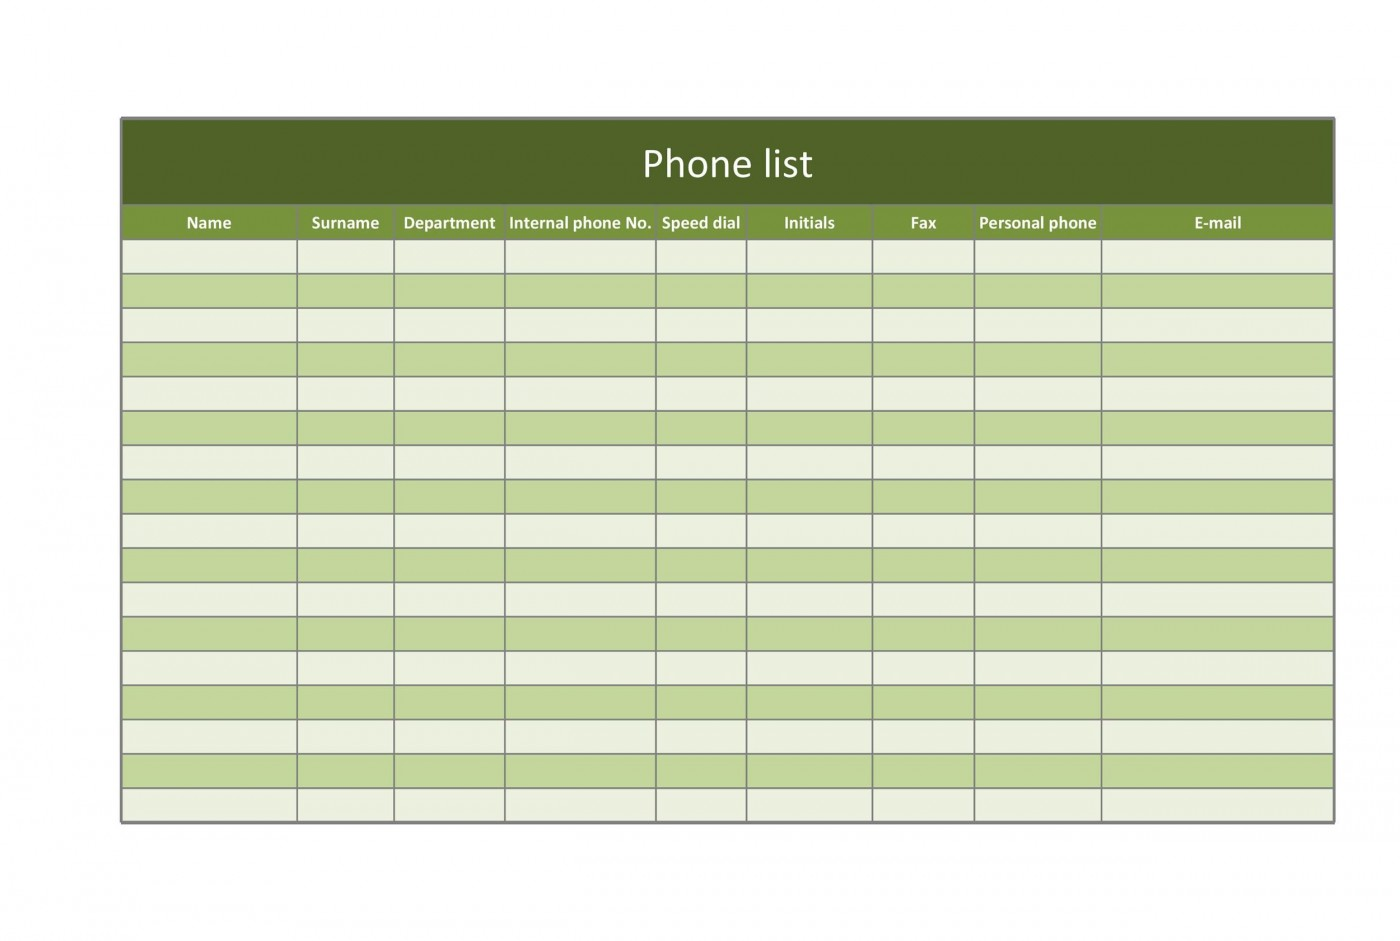 007 Breathtaking Microsoft Excel Phone List Template High Definition  Contact Part1400